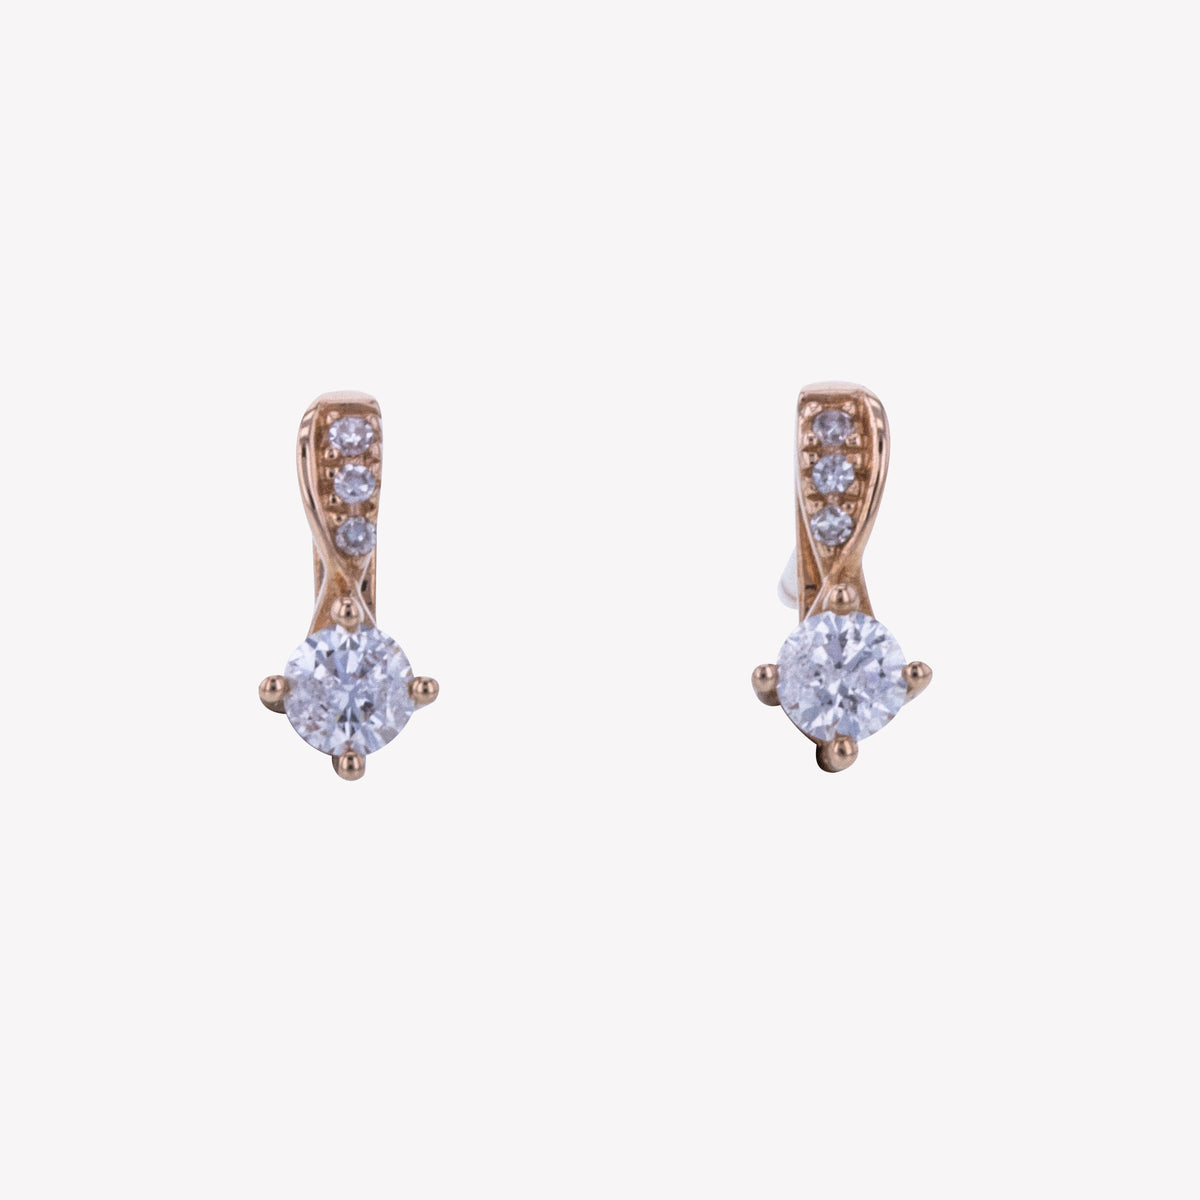 18K R/G Diamond Earring